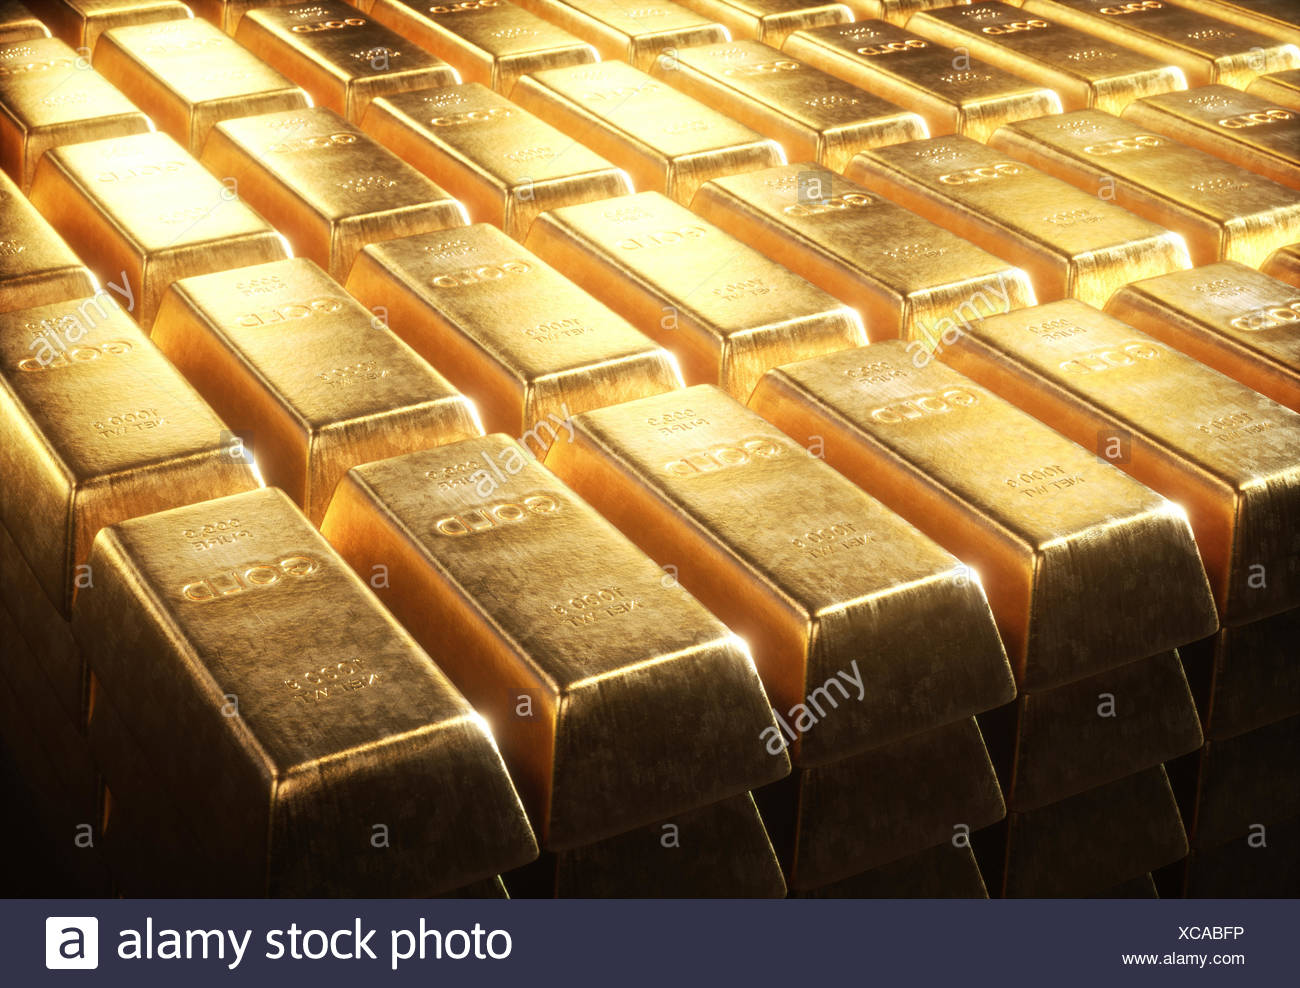 Gold bars, illustration. - Stock Image